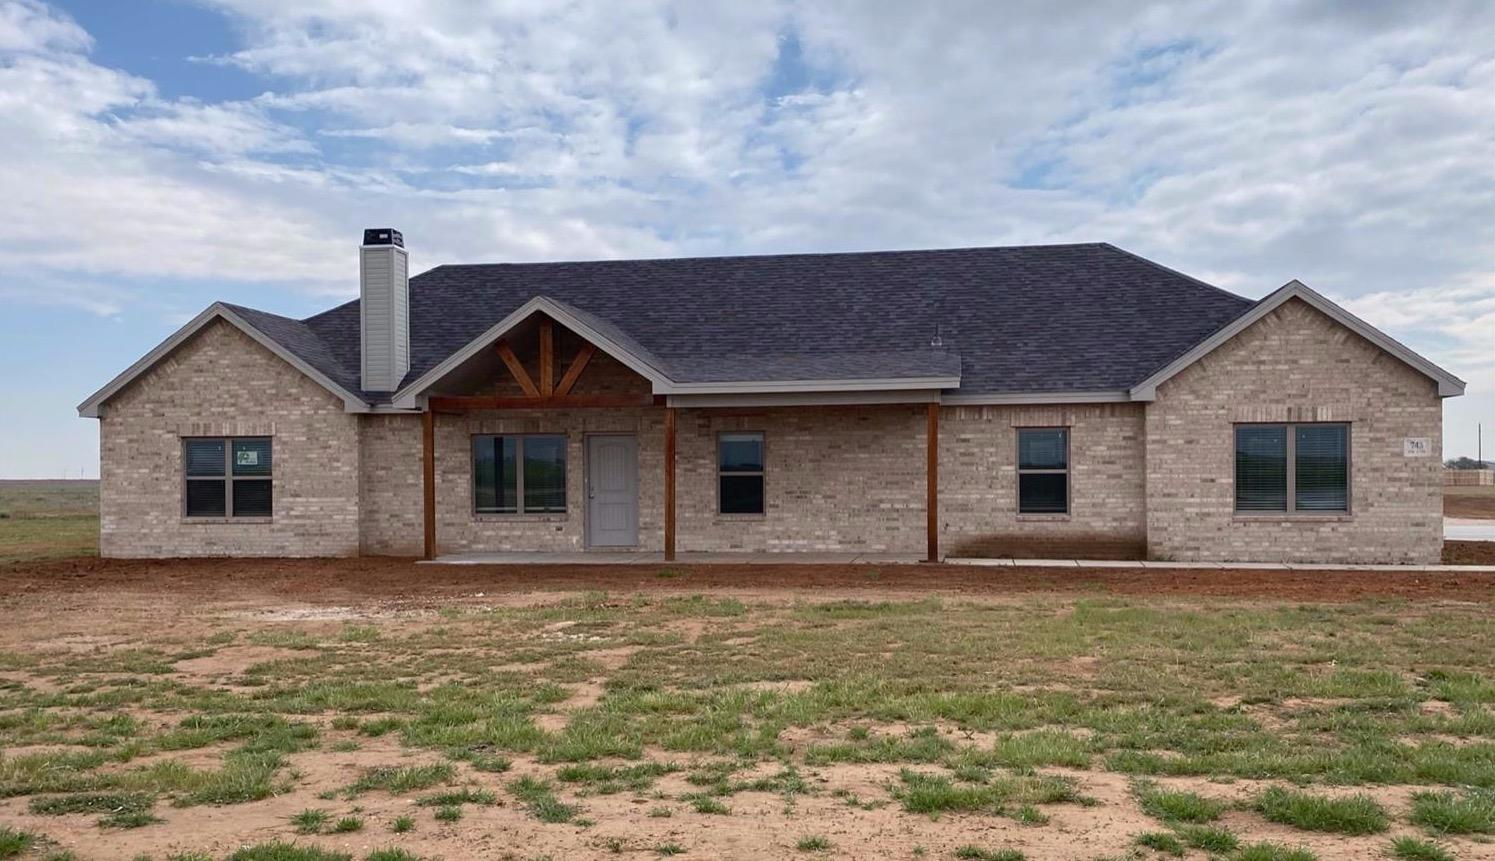 New construction on 1.68 acres in New Home School District! This 4/3/2 has 2 living areas, and a 30 x 40 SHOP. Large utility/mudroom with lockers, sink, and storage. Open concept living area with wood burning fireplace. Granite countertops in kitchen, utility and baths. Kitchen offers island, large walk in pantry and stainless steel appliances. Isolated master suite has tiled shower, soaking tub, and large wrap around closet with built ins. 1-2-10 builder's warranty!